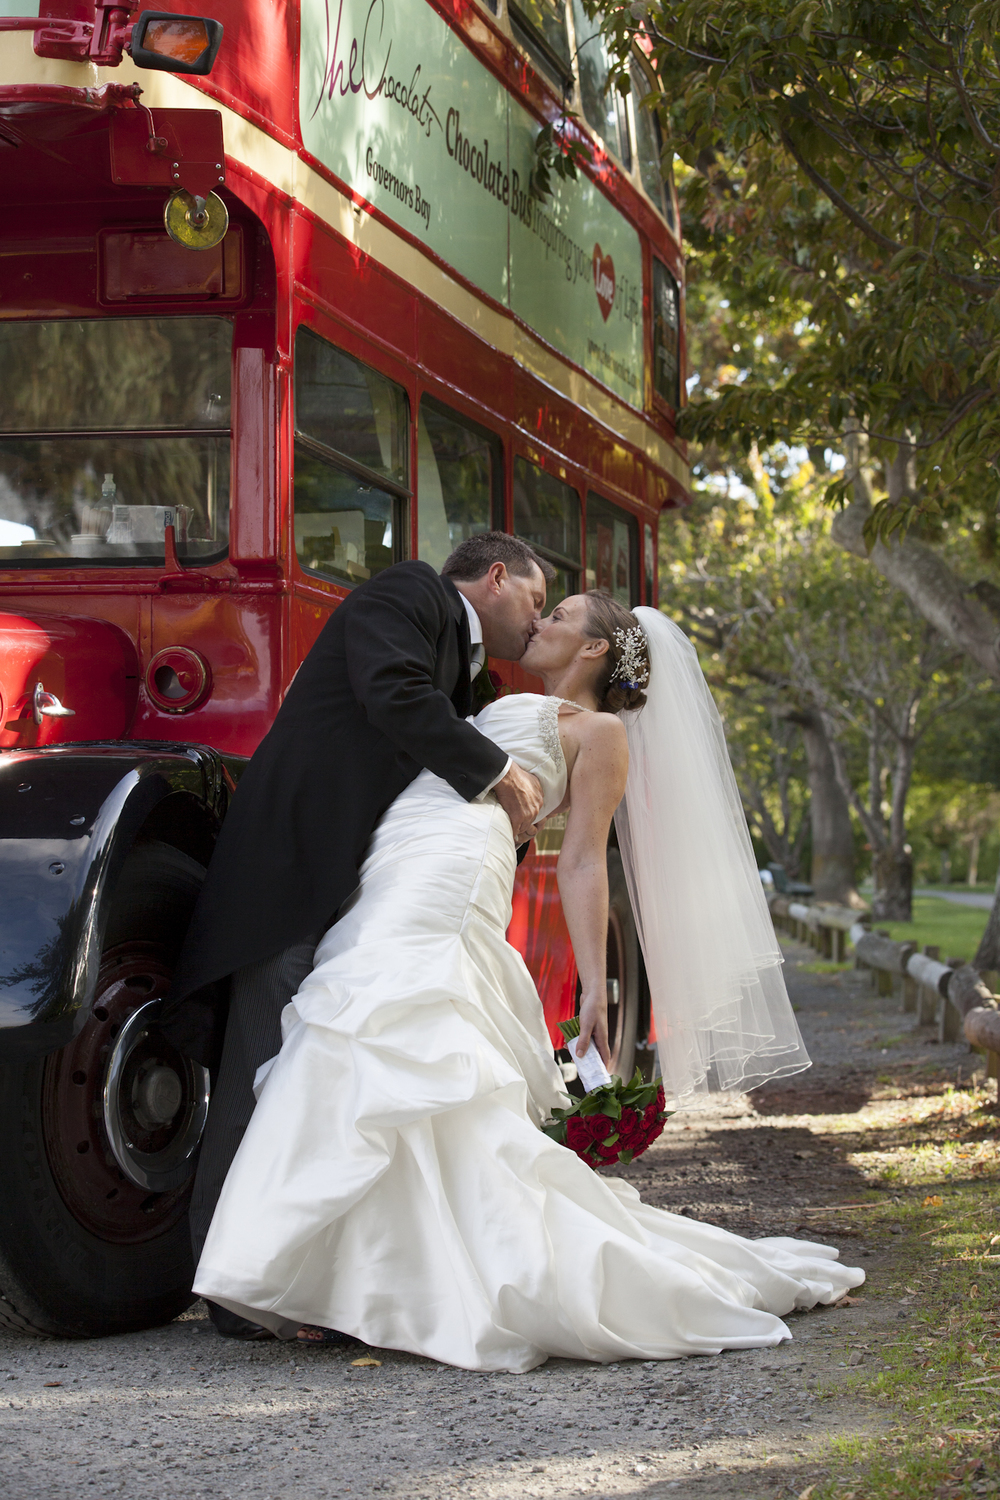 Wedding bus 2.jpg